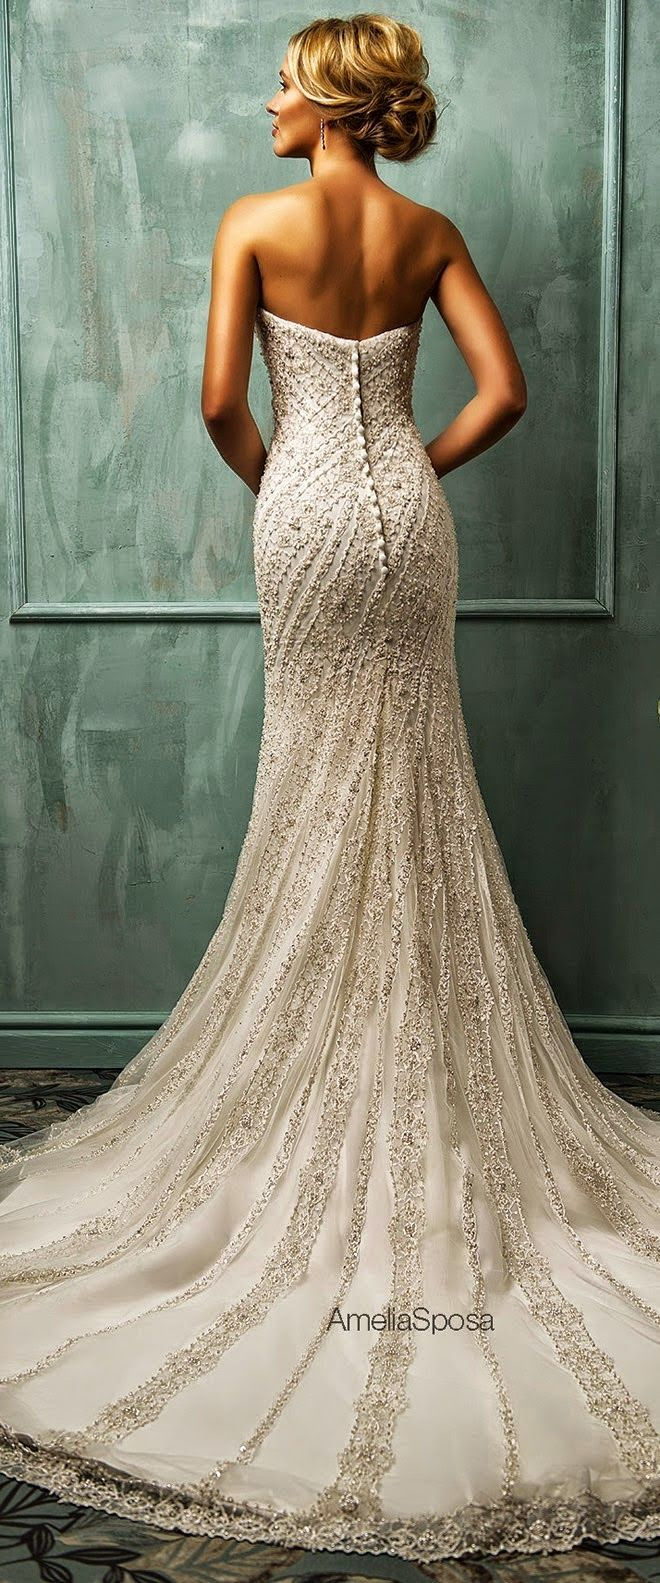 Best Wedding Dresses of 2014 - Belle the Magazine . The Wedding Blog For The Sophisticated Bride hair